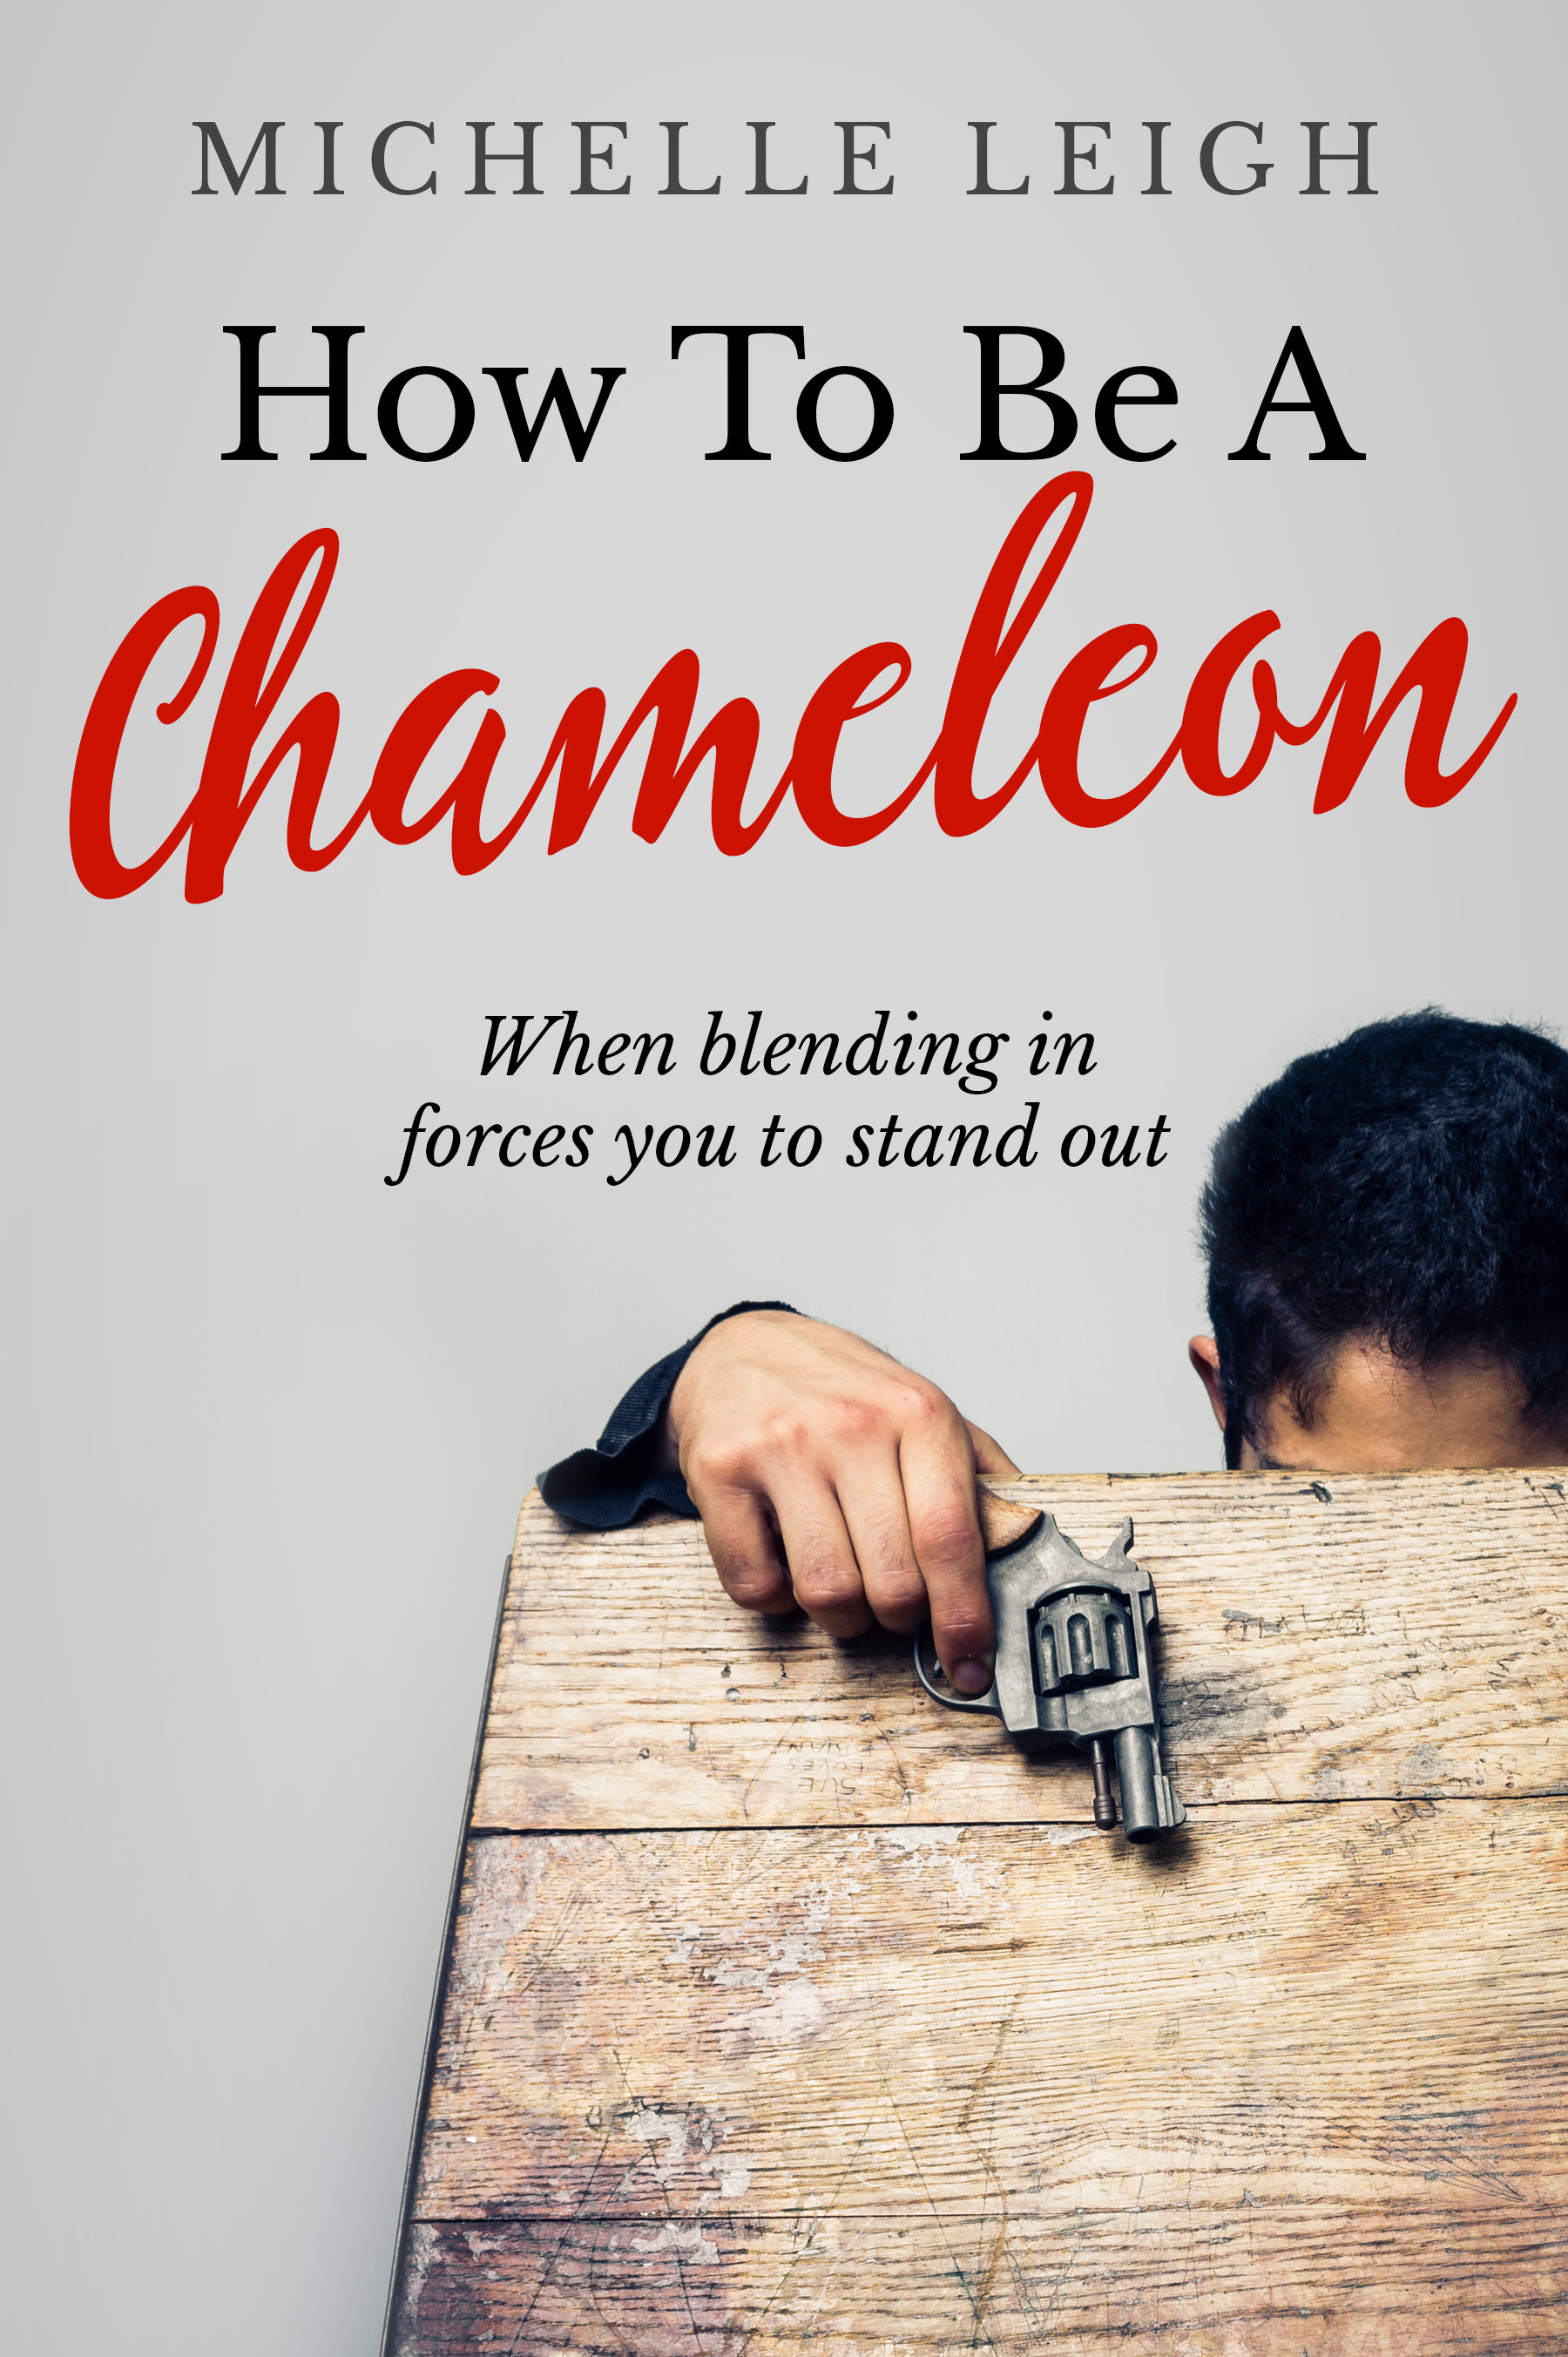 How To Be A Chameleon Michelle Leigh